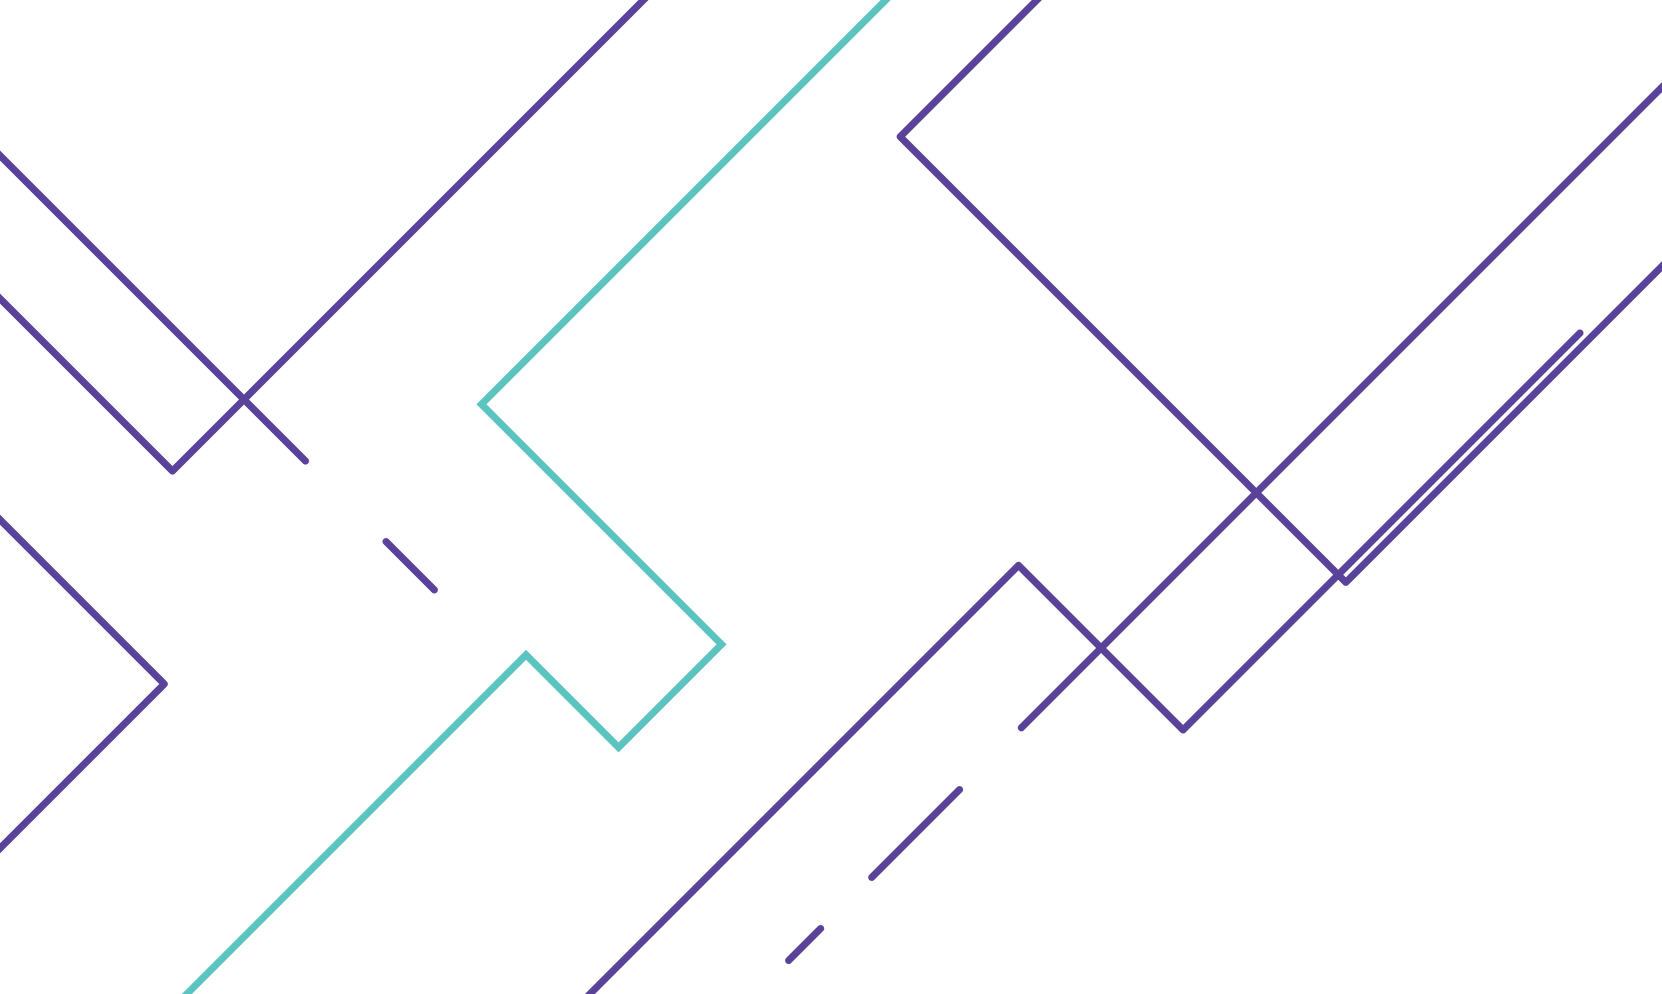 Lines-01.png